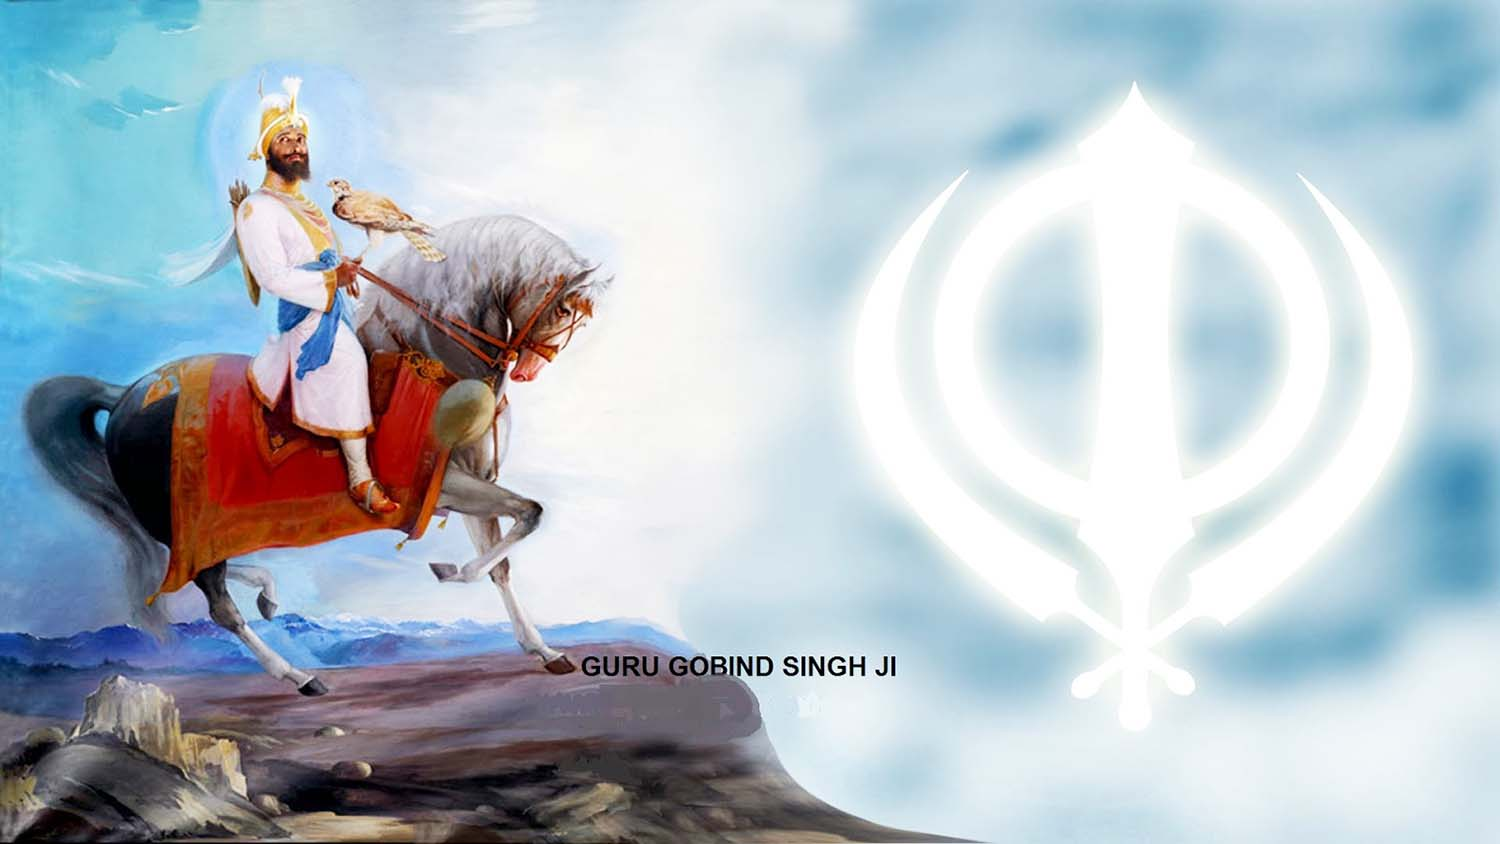 images of guru gobind singh ji download